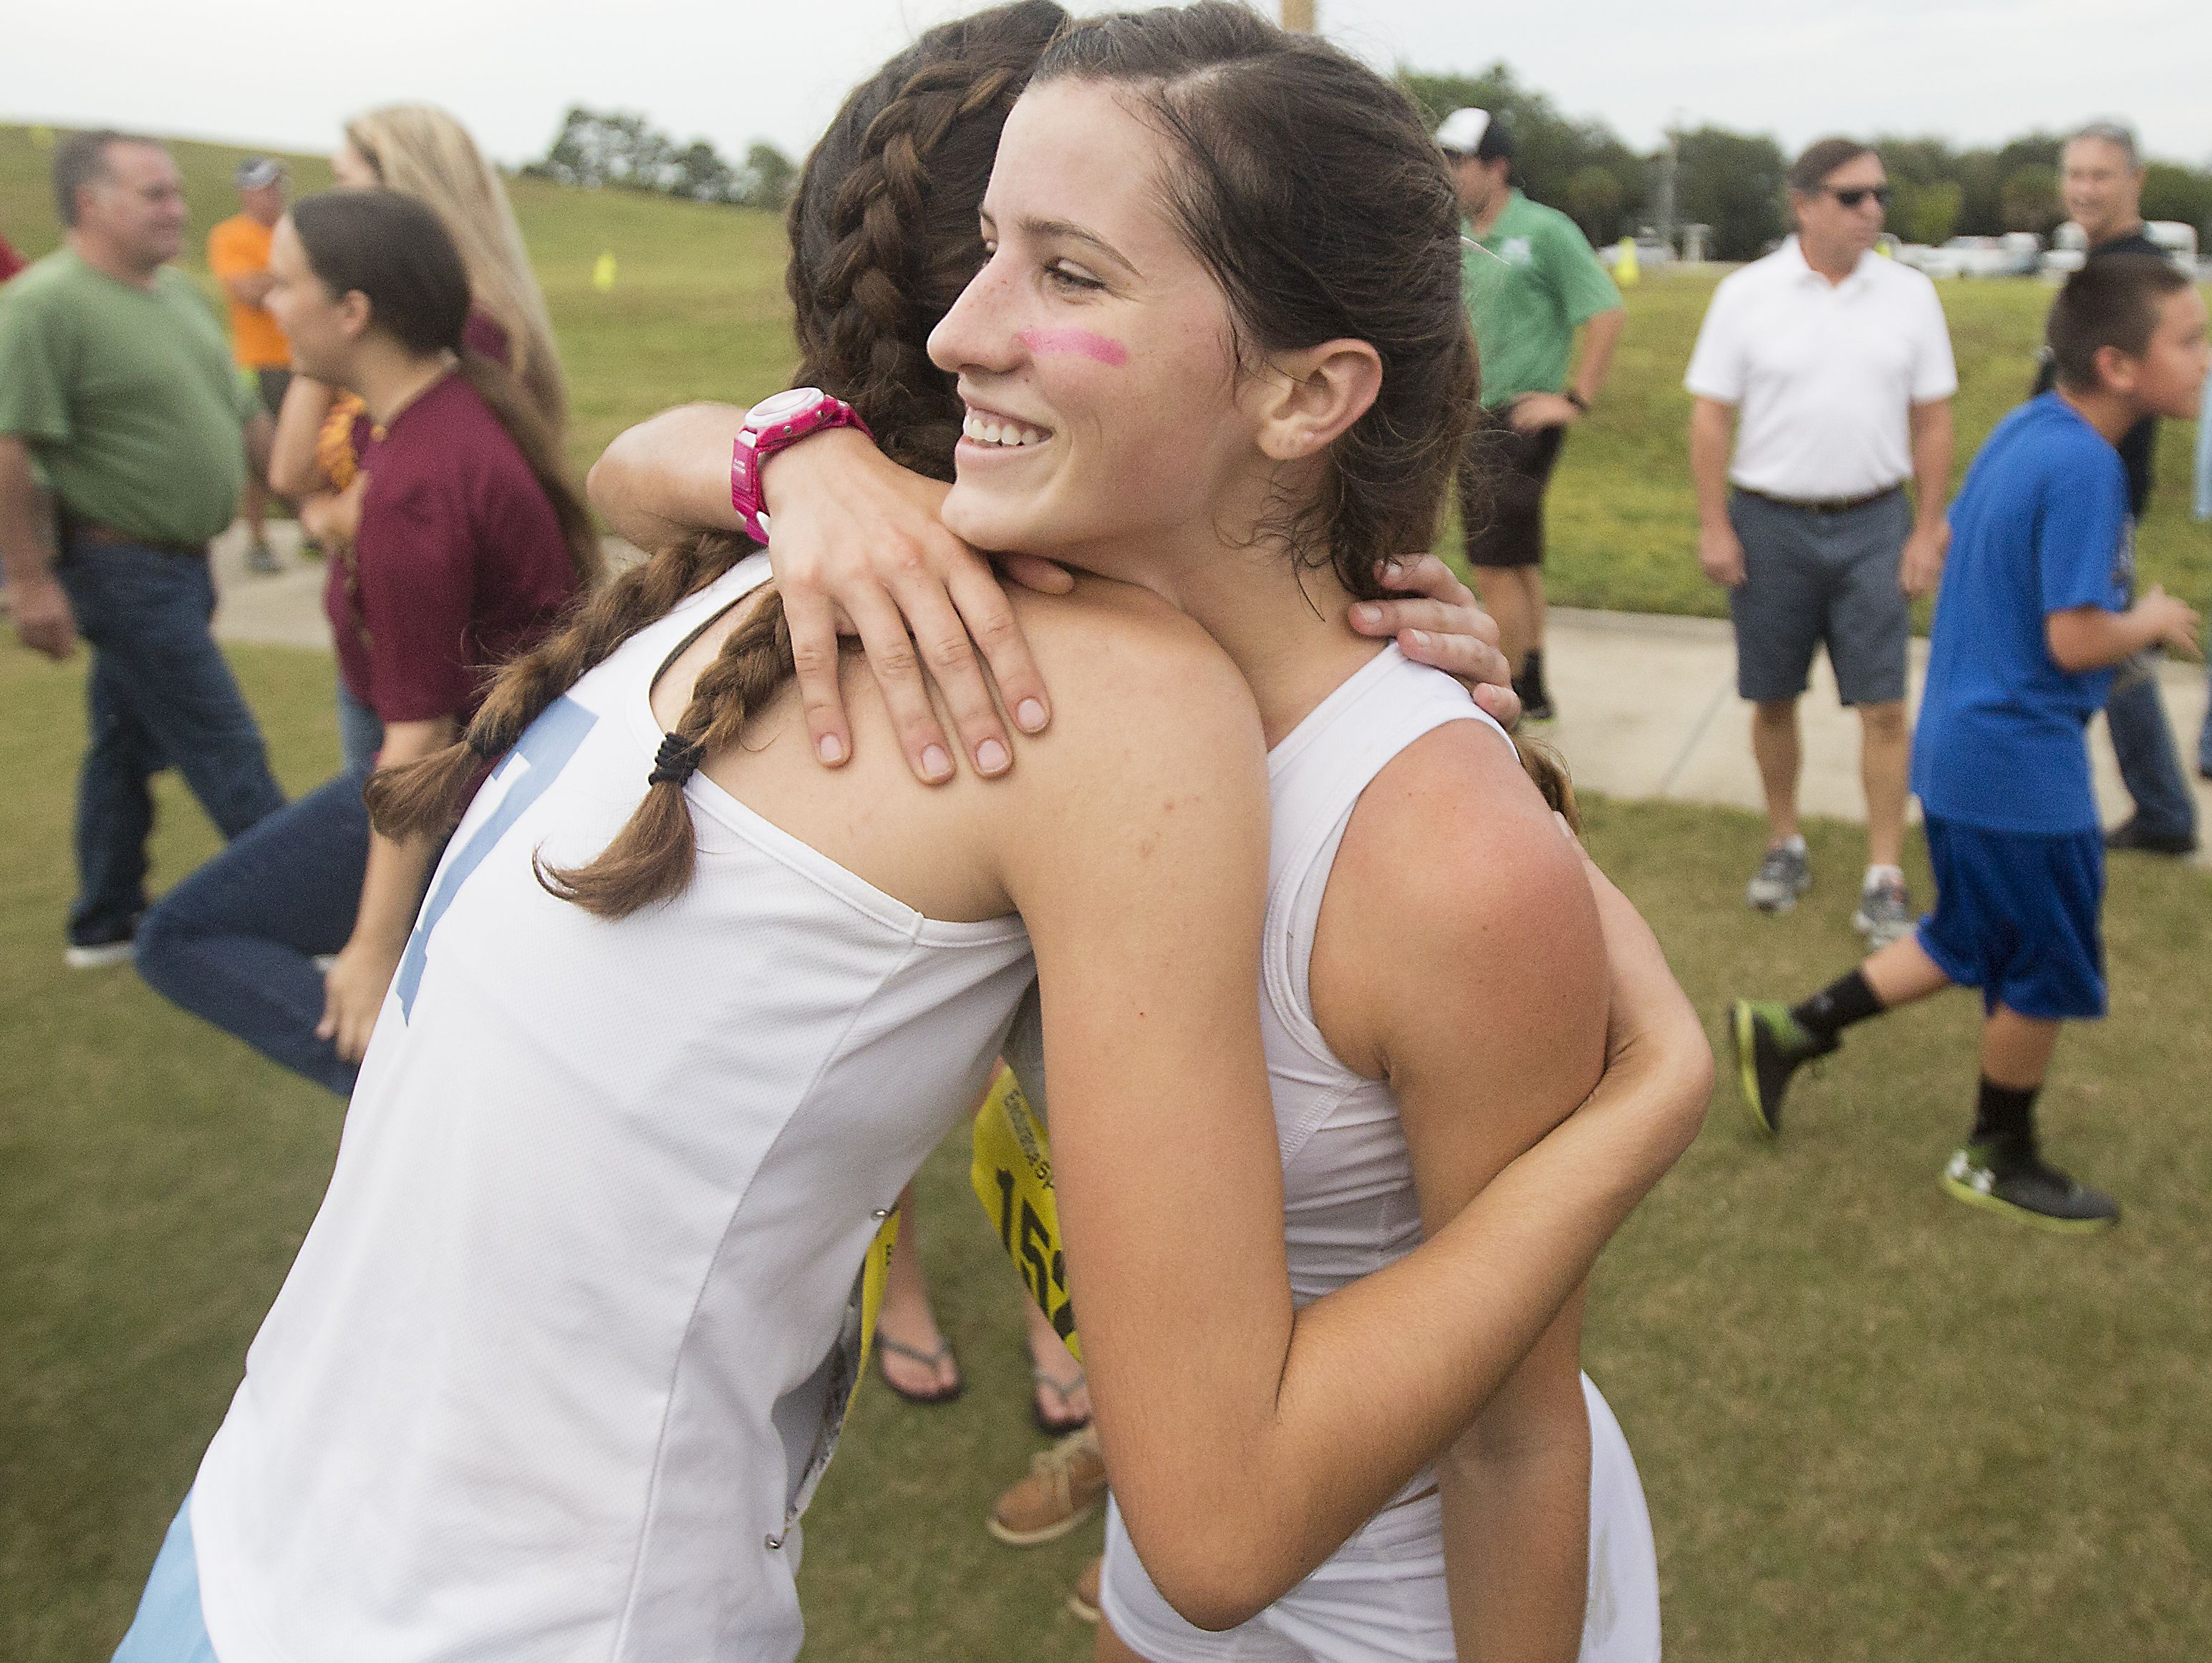 Fort Myers High School x-country runner Krissy Gear gets a hug from a competitor after winning the FHSAA 3A District finals at Estero Community Park on Friday. The Fort Myers High School girls also won the over all title.